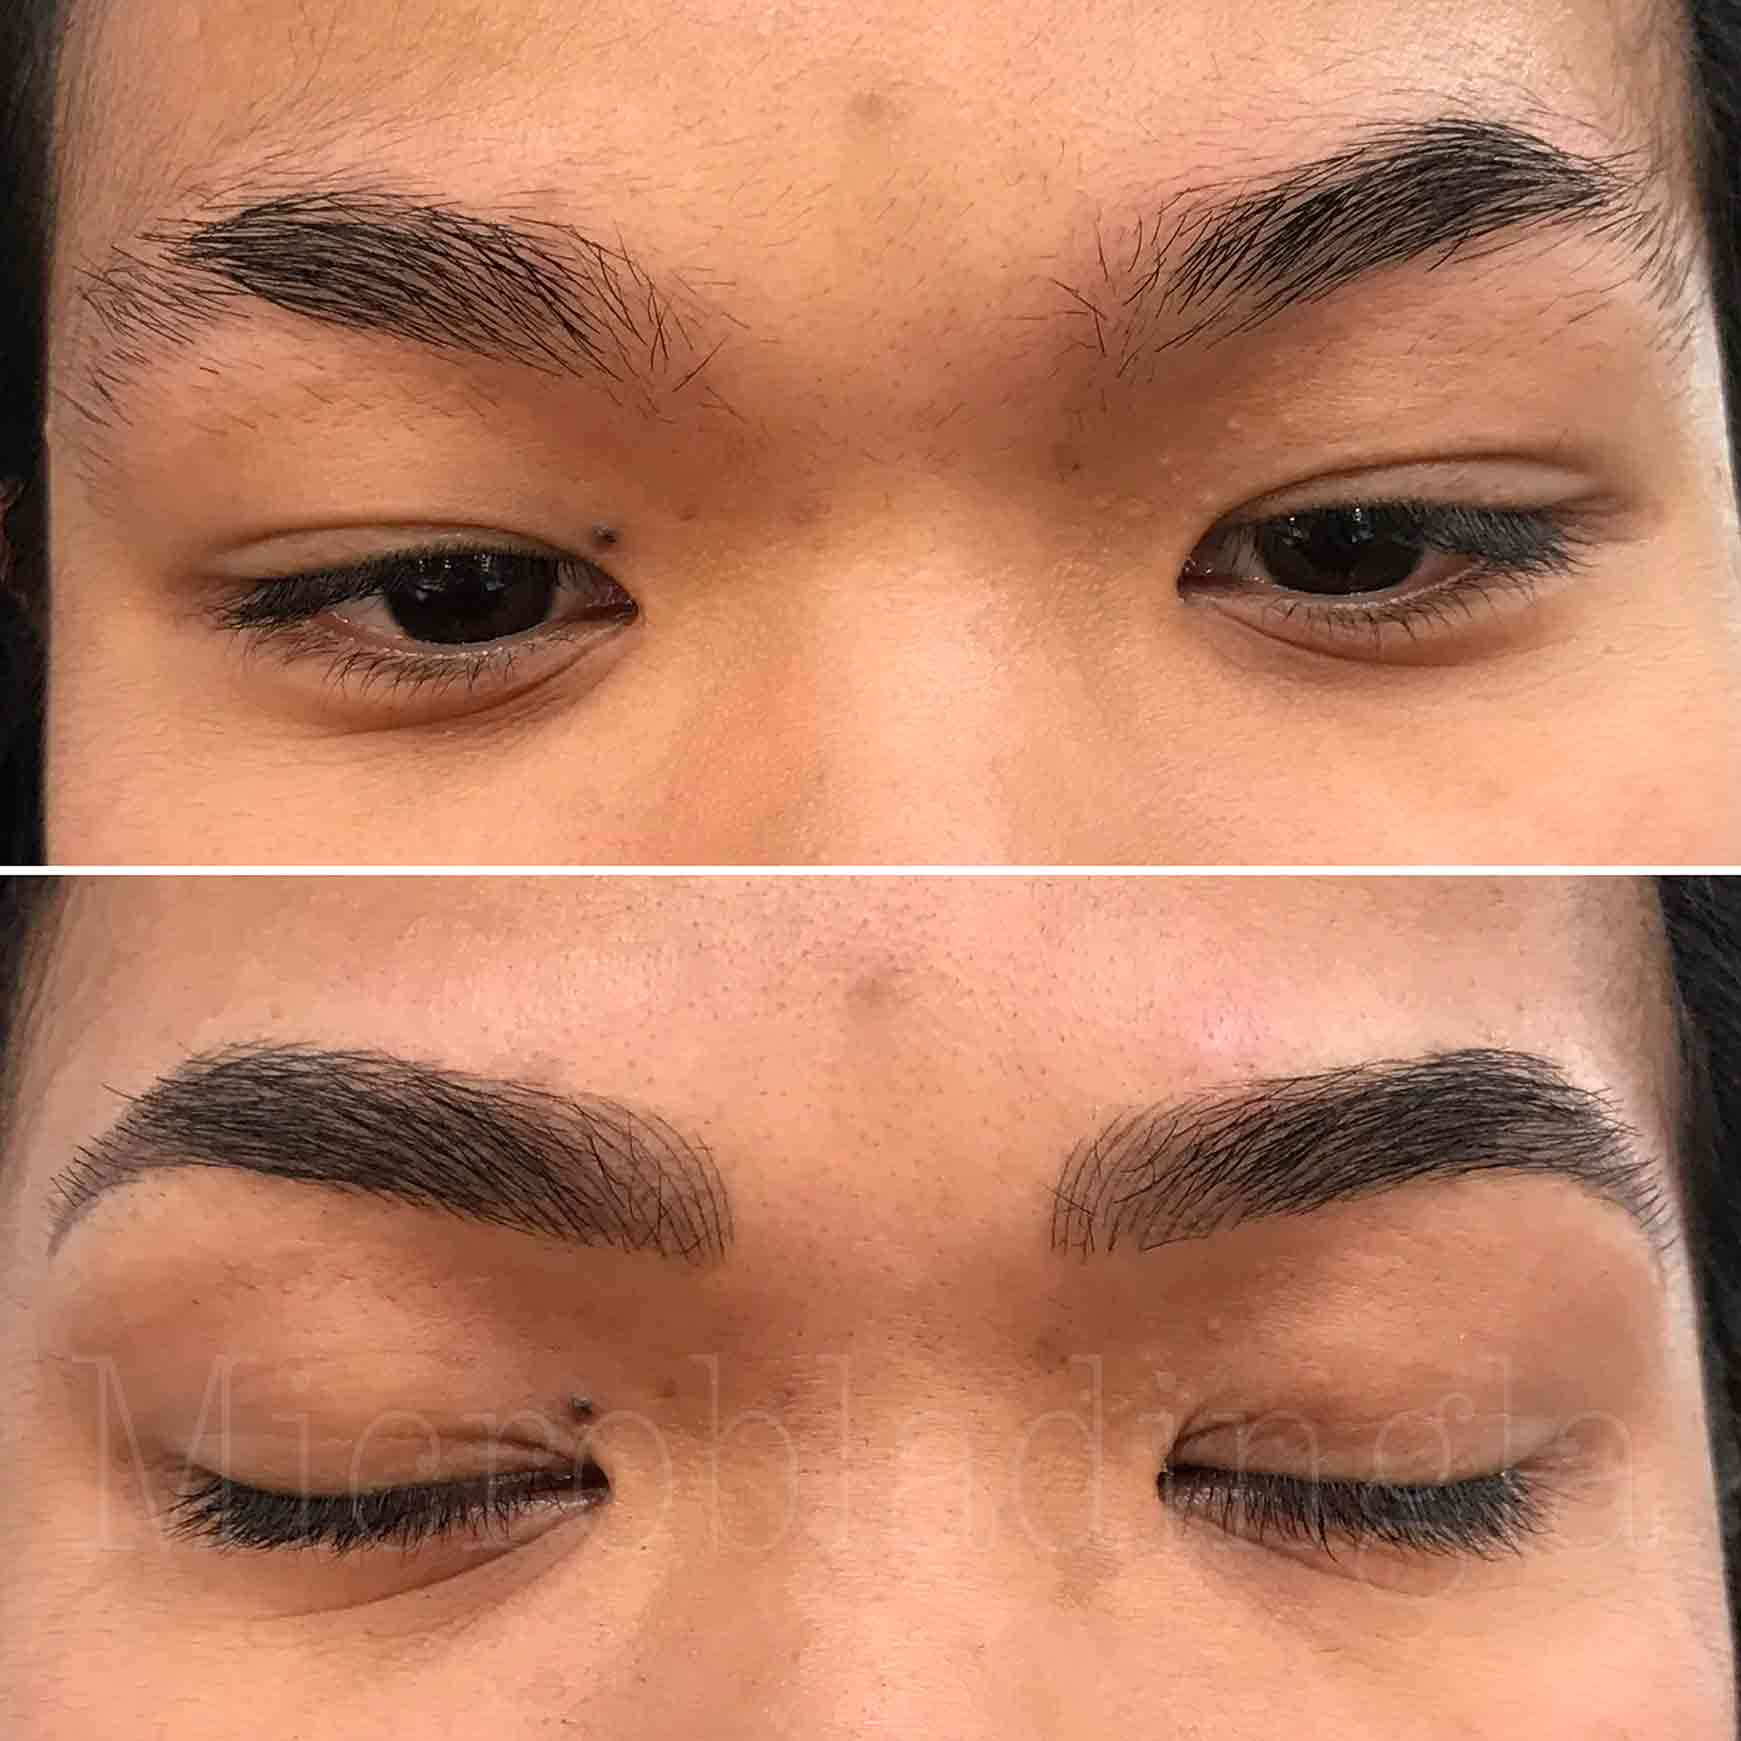 Oily Skin? Read this before you get microblading